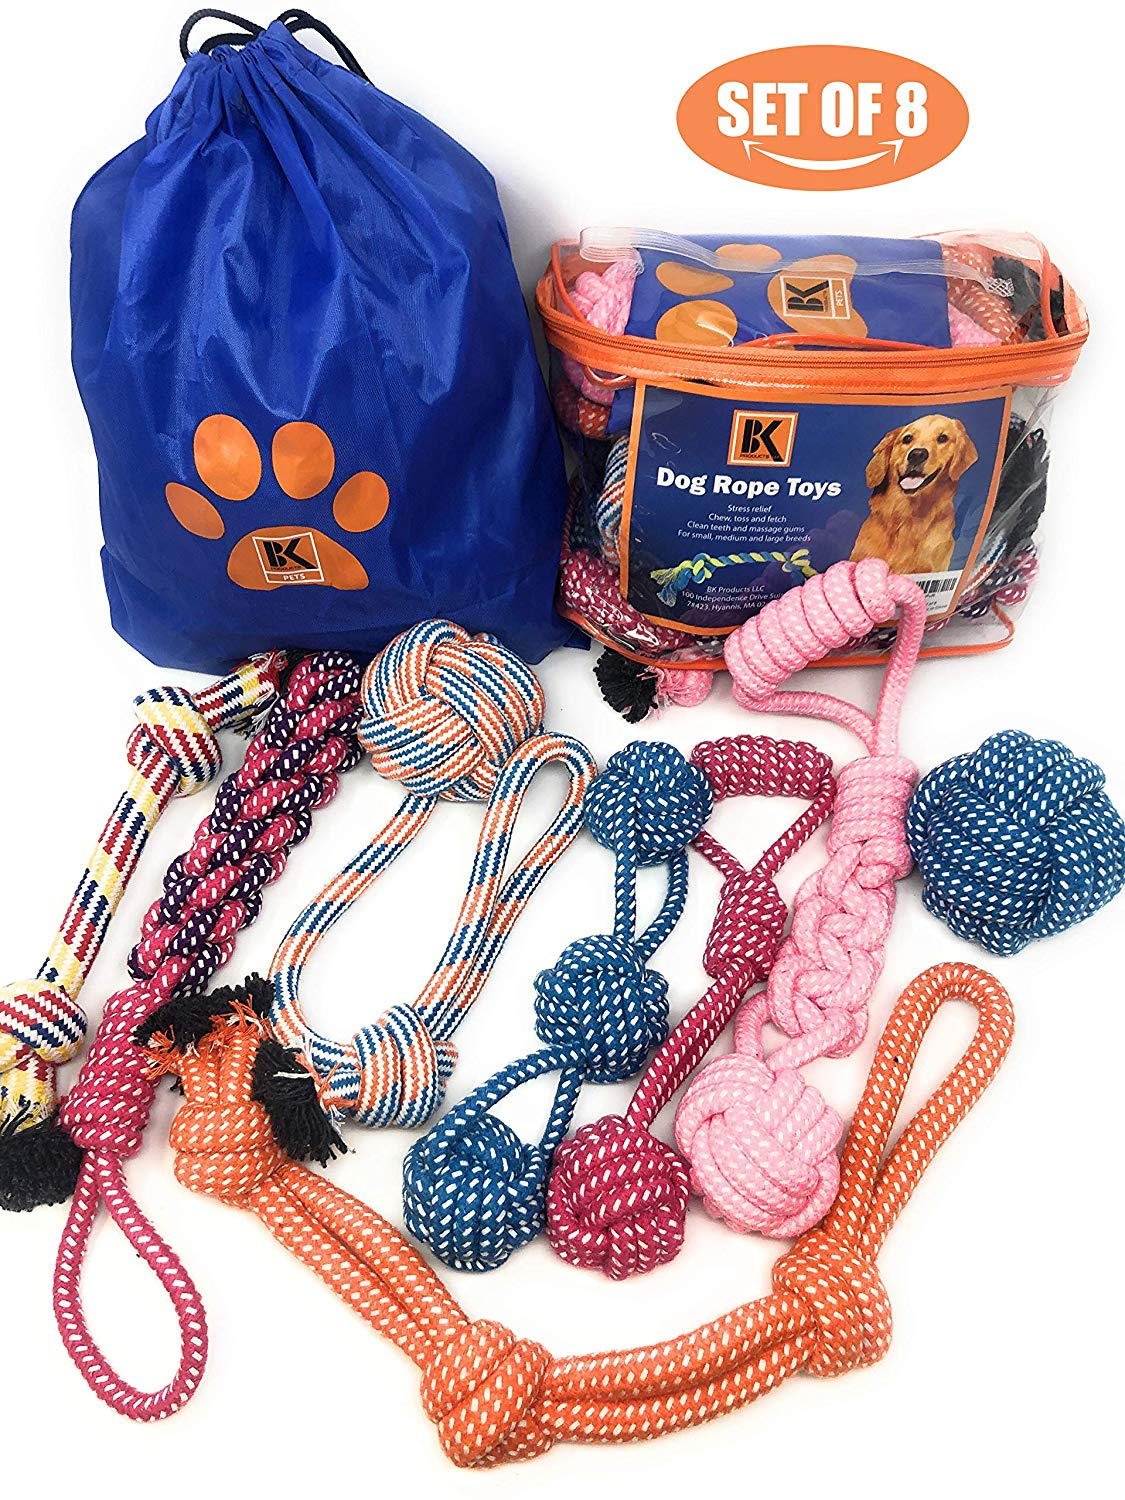 Teething and Playful Dogs? 8 Dog Toys for $19.95!